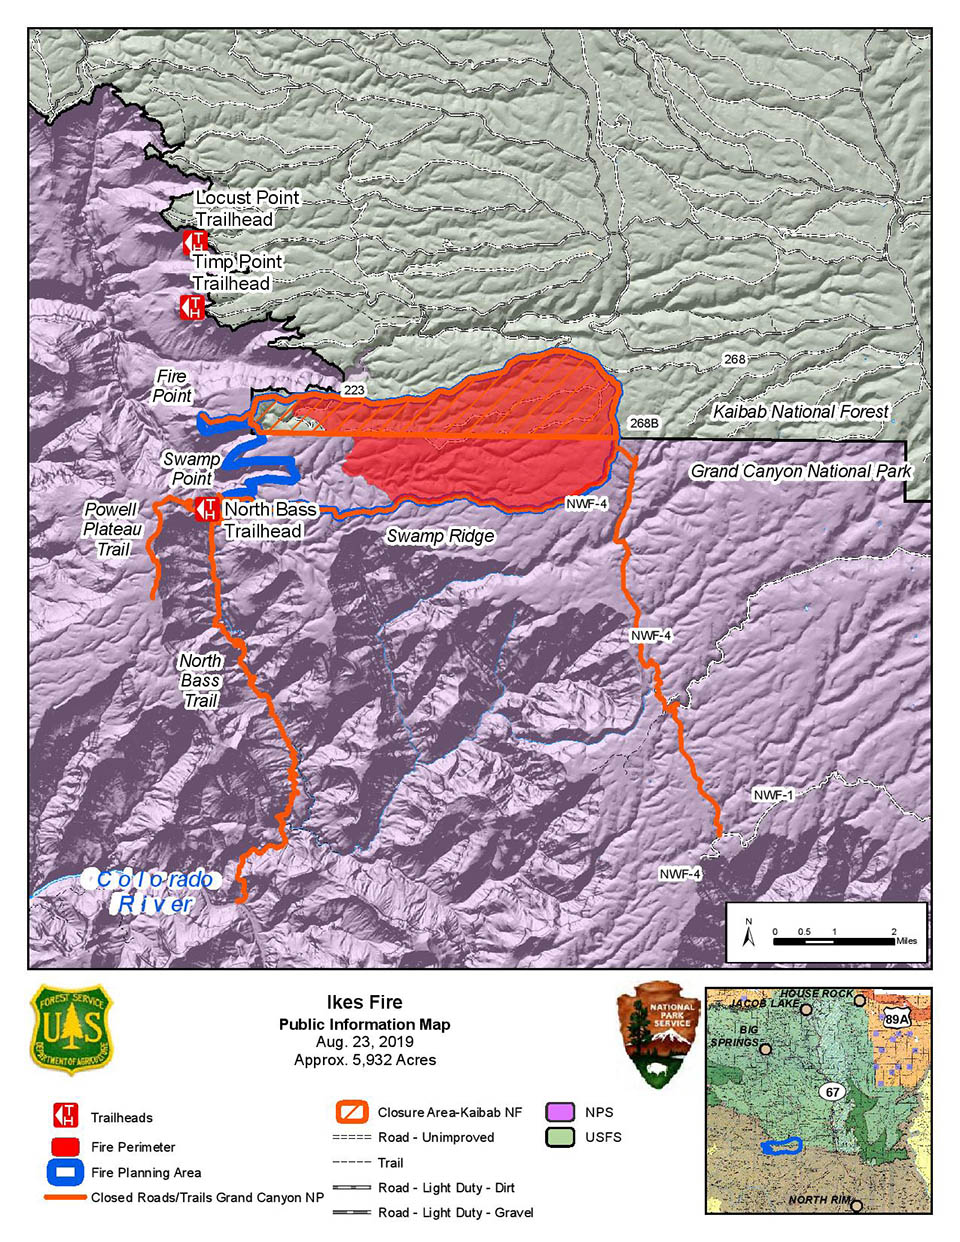 Map showing the Ikes Fire containment area in relation to the north side of Grand Canyon National Park in its boundary with Kaibab Nat. Forest